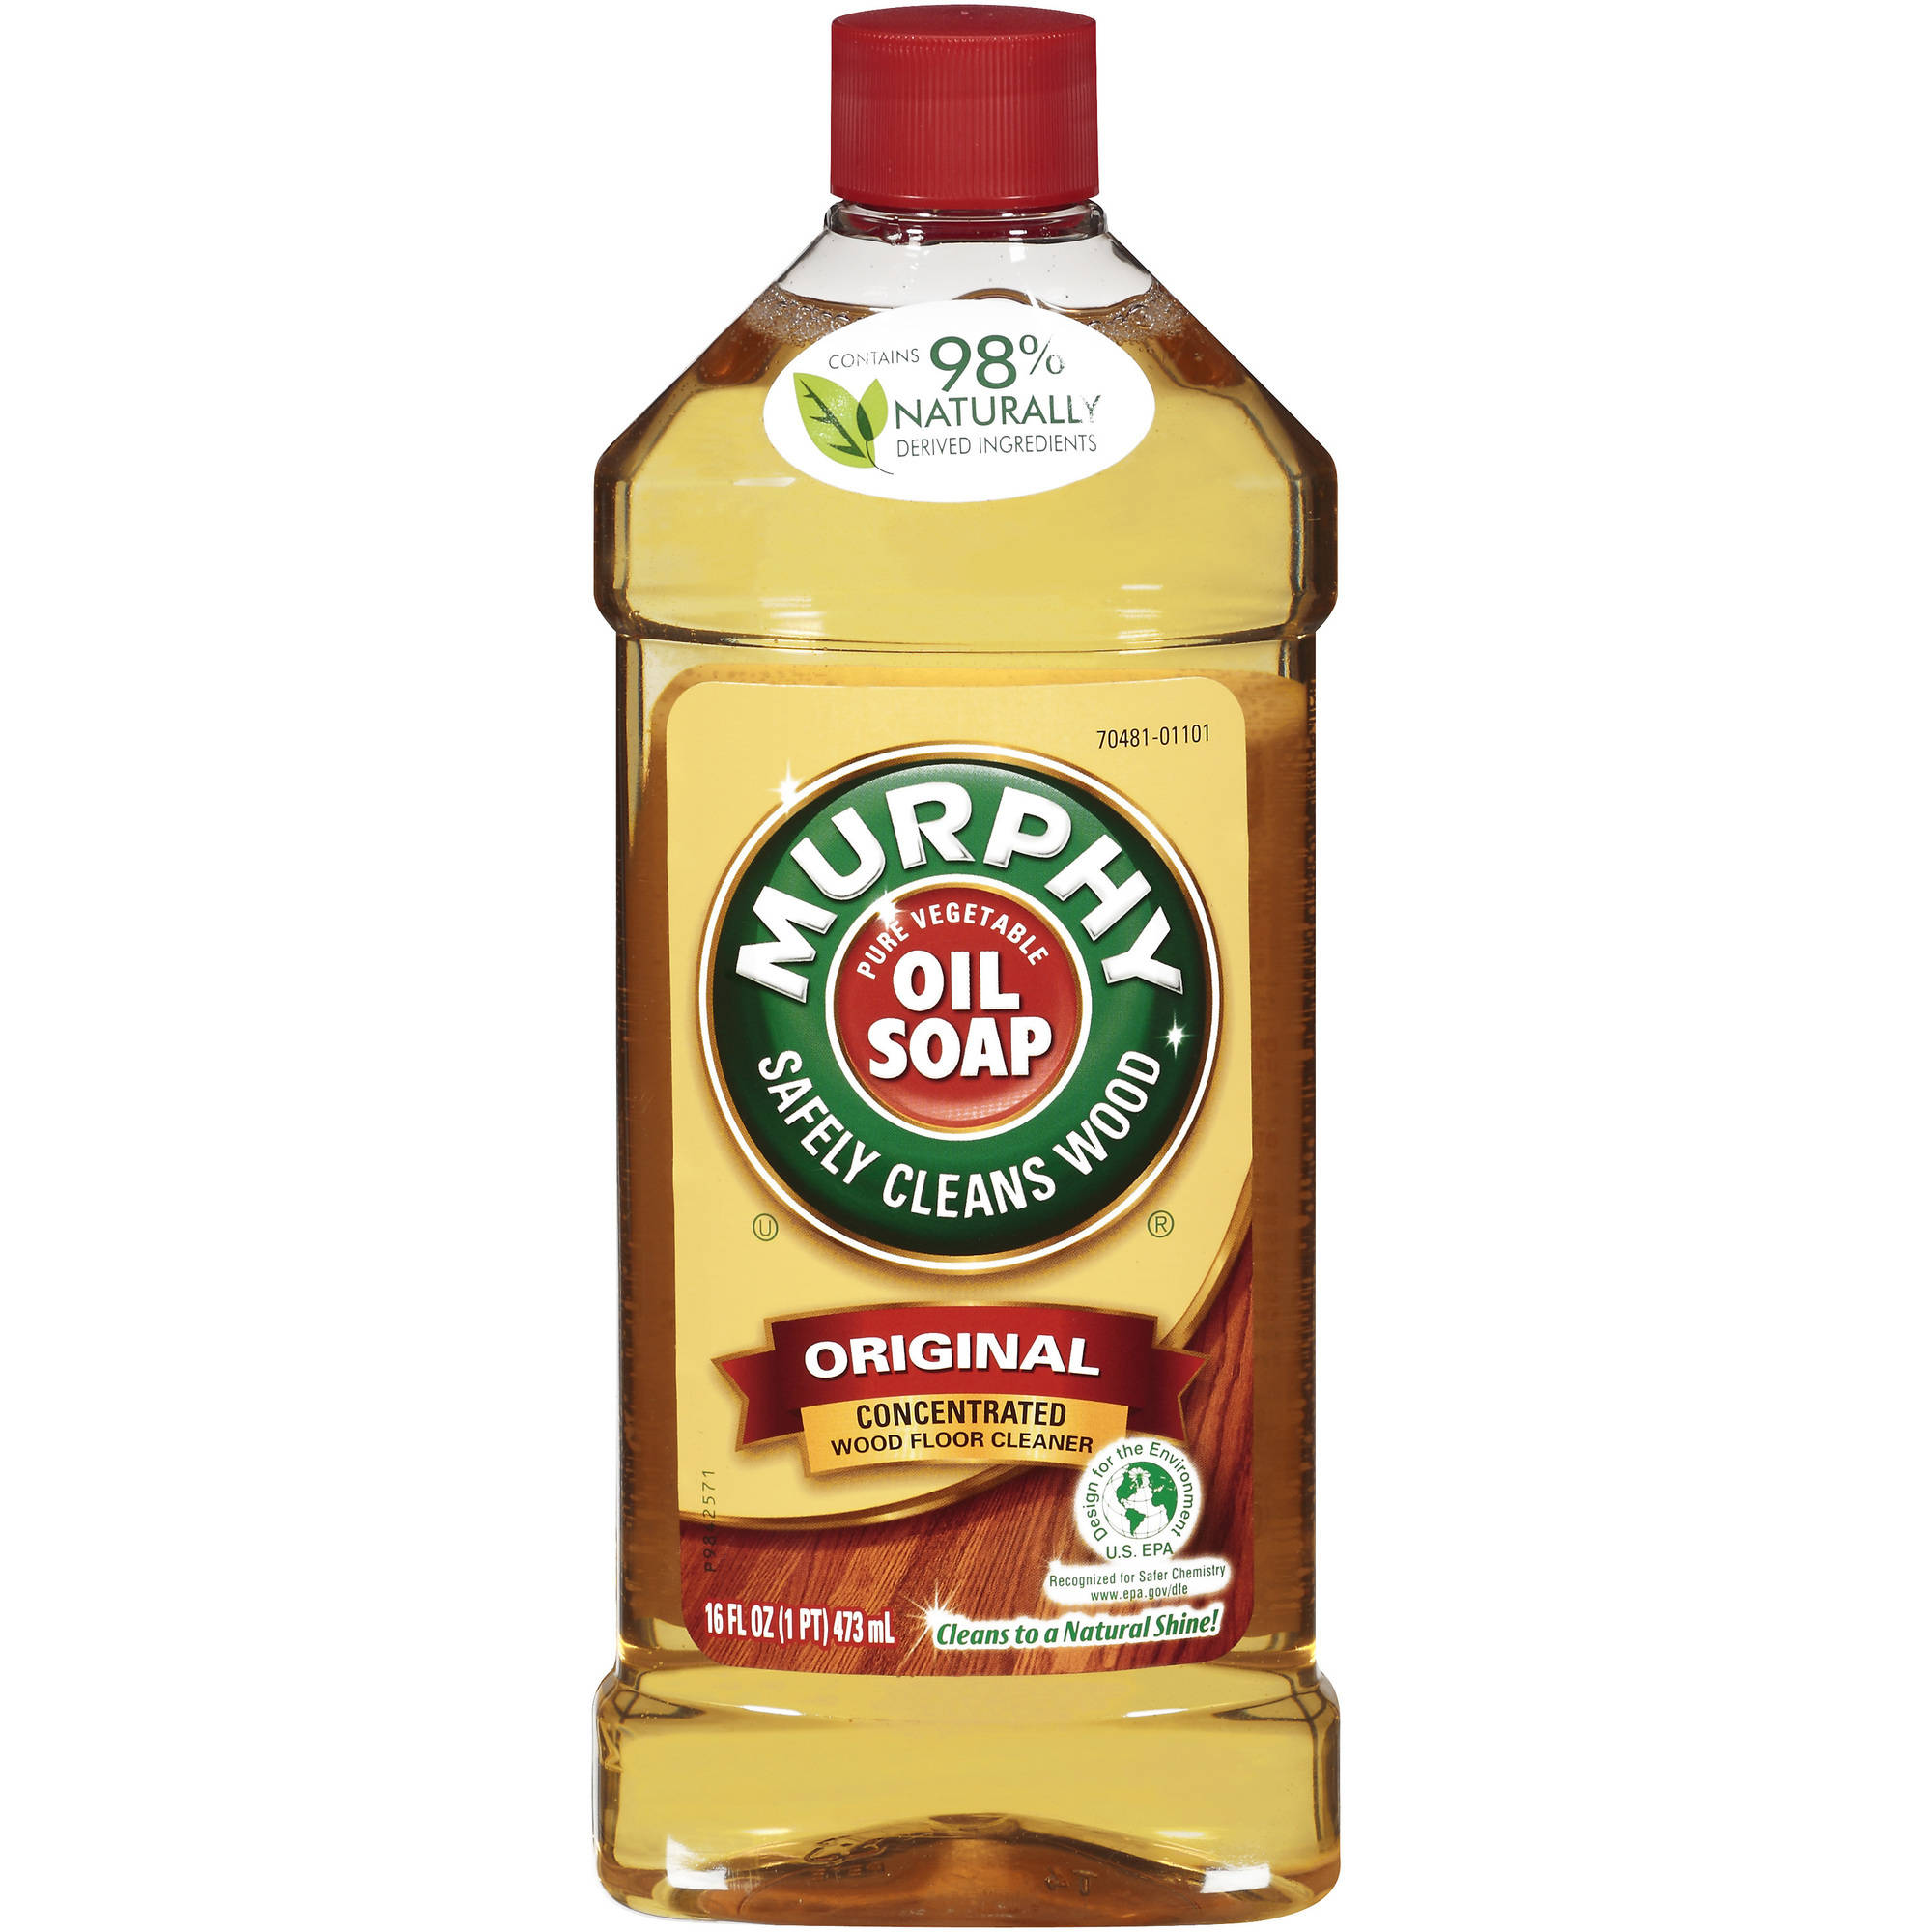 Murphy Original Oil Soap Concentrated Wood Floor Cleaner